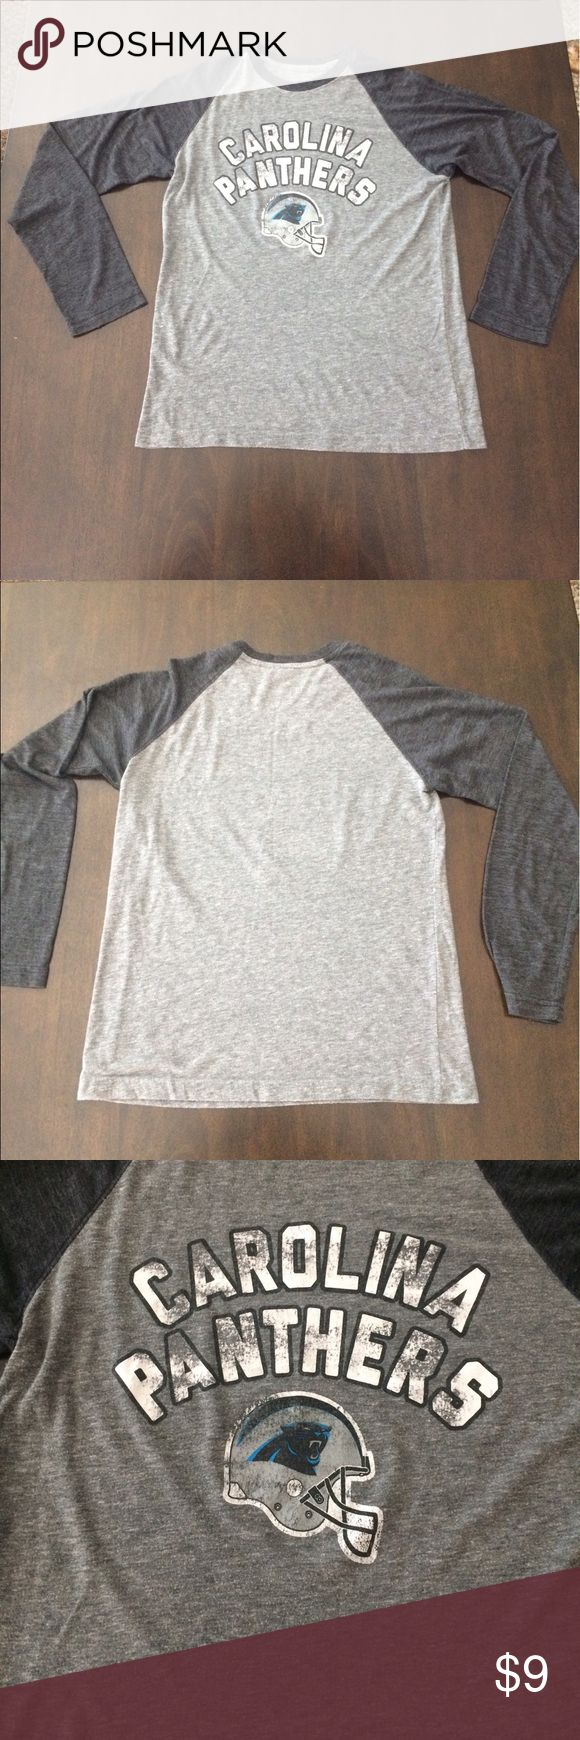 Gray NFL Carolina Panthers Long Sleeve Tee Official NFL gear. Pre-Owned Condition. Tops Tees - Long Sleeve